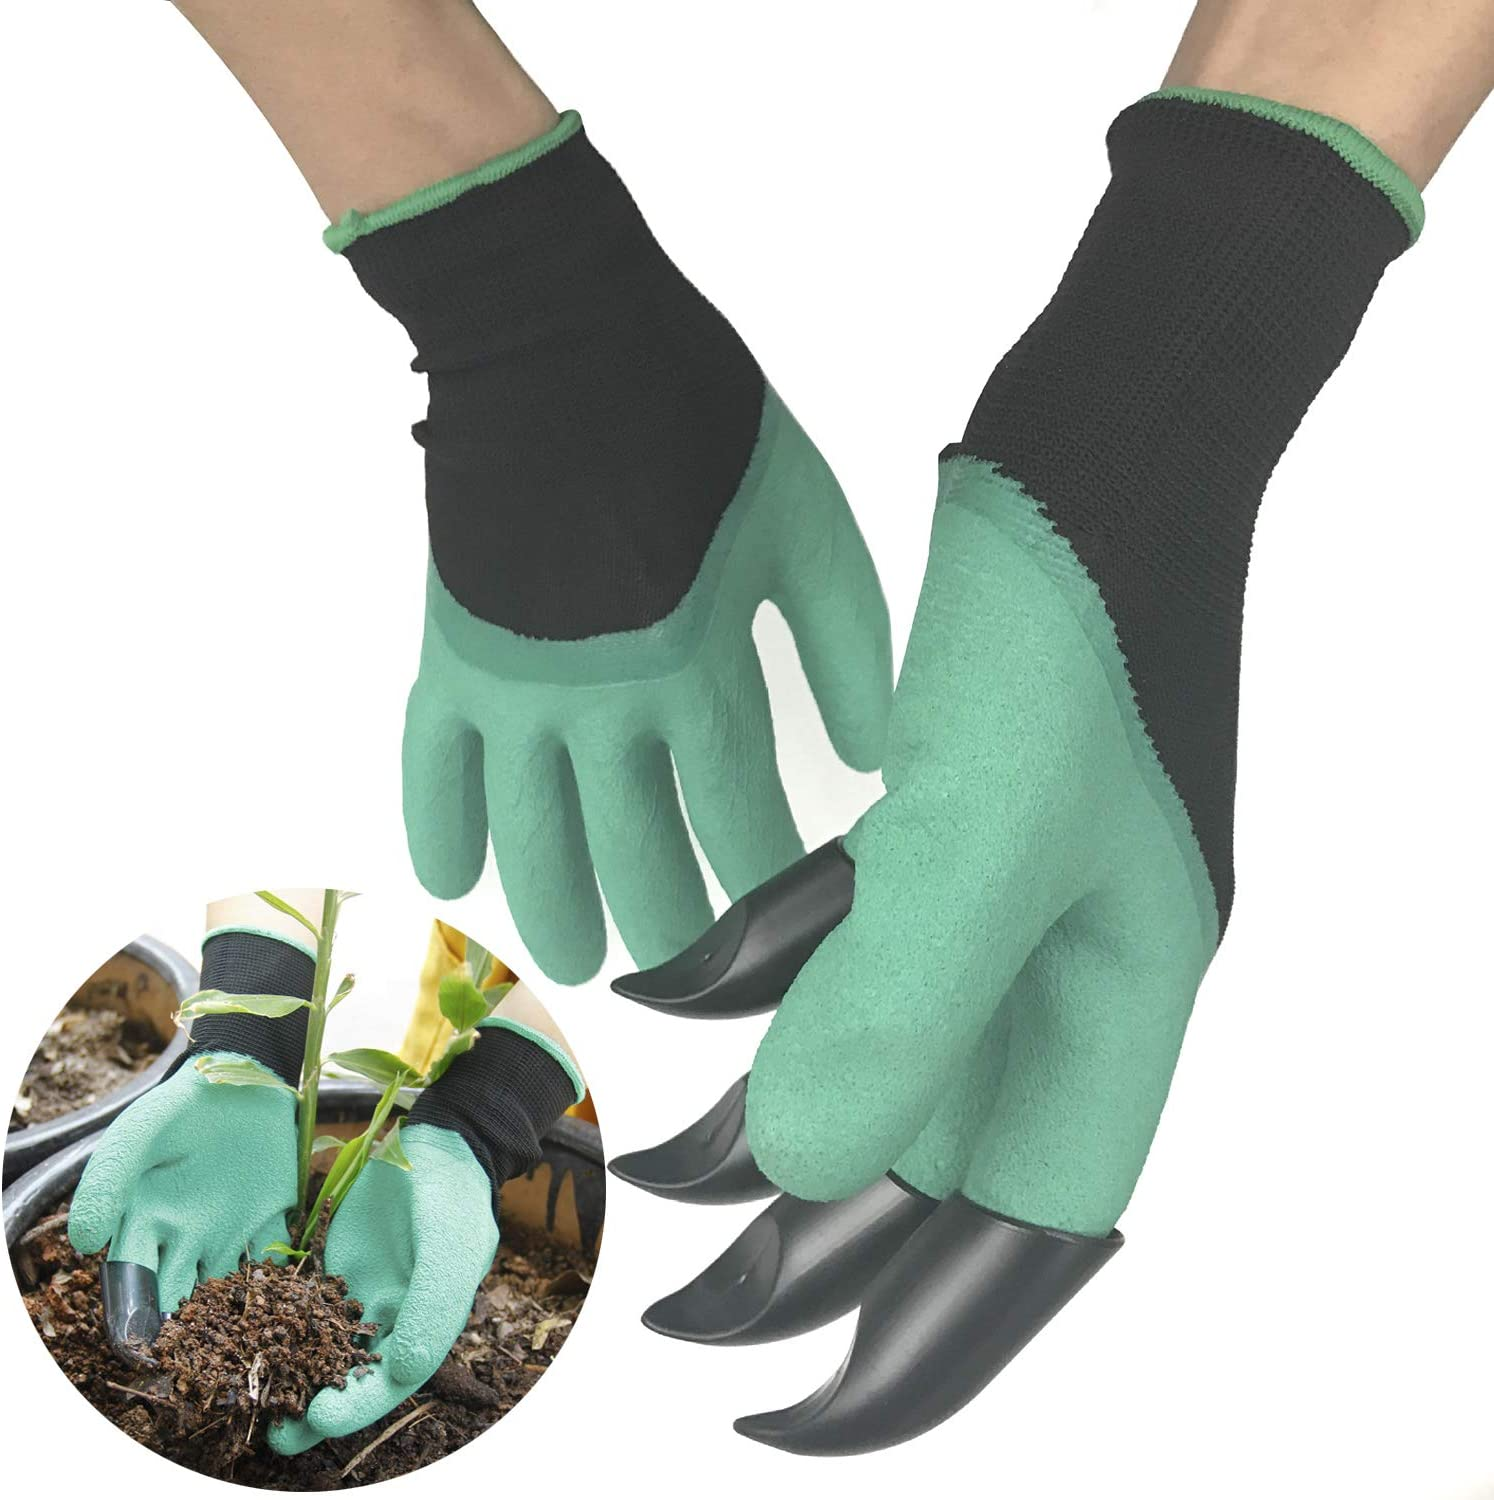 2Pair Garden Genie Gloves, 1Pair with Claws, another no Claws, Waterproof Protective Garden Gloves for Digging, Planting, Rose Pruning